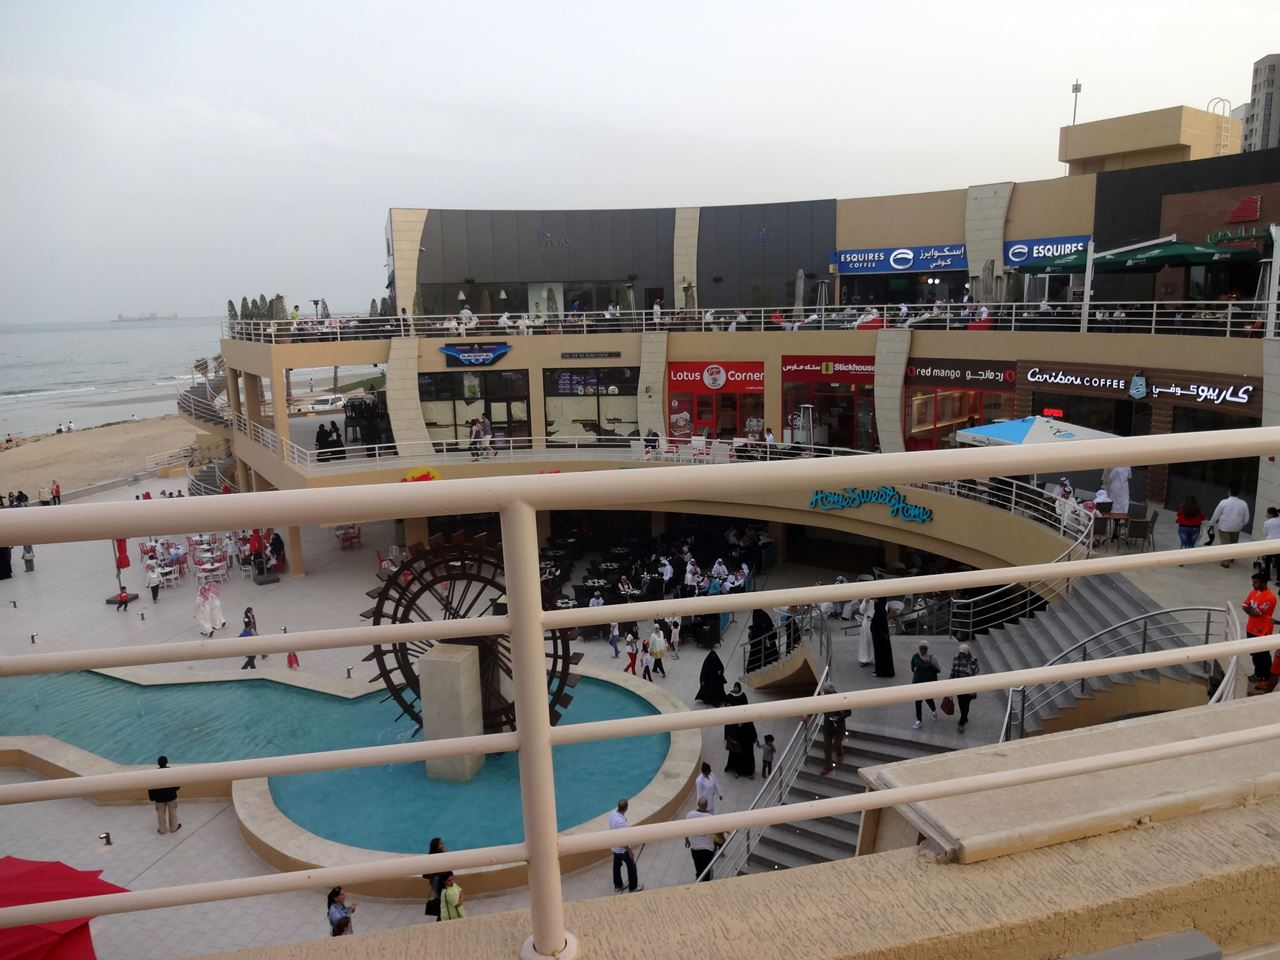 Our first visit to Miral Mall